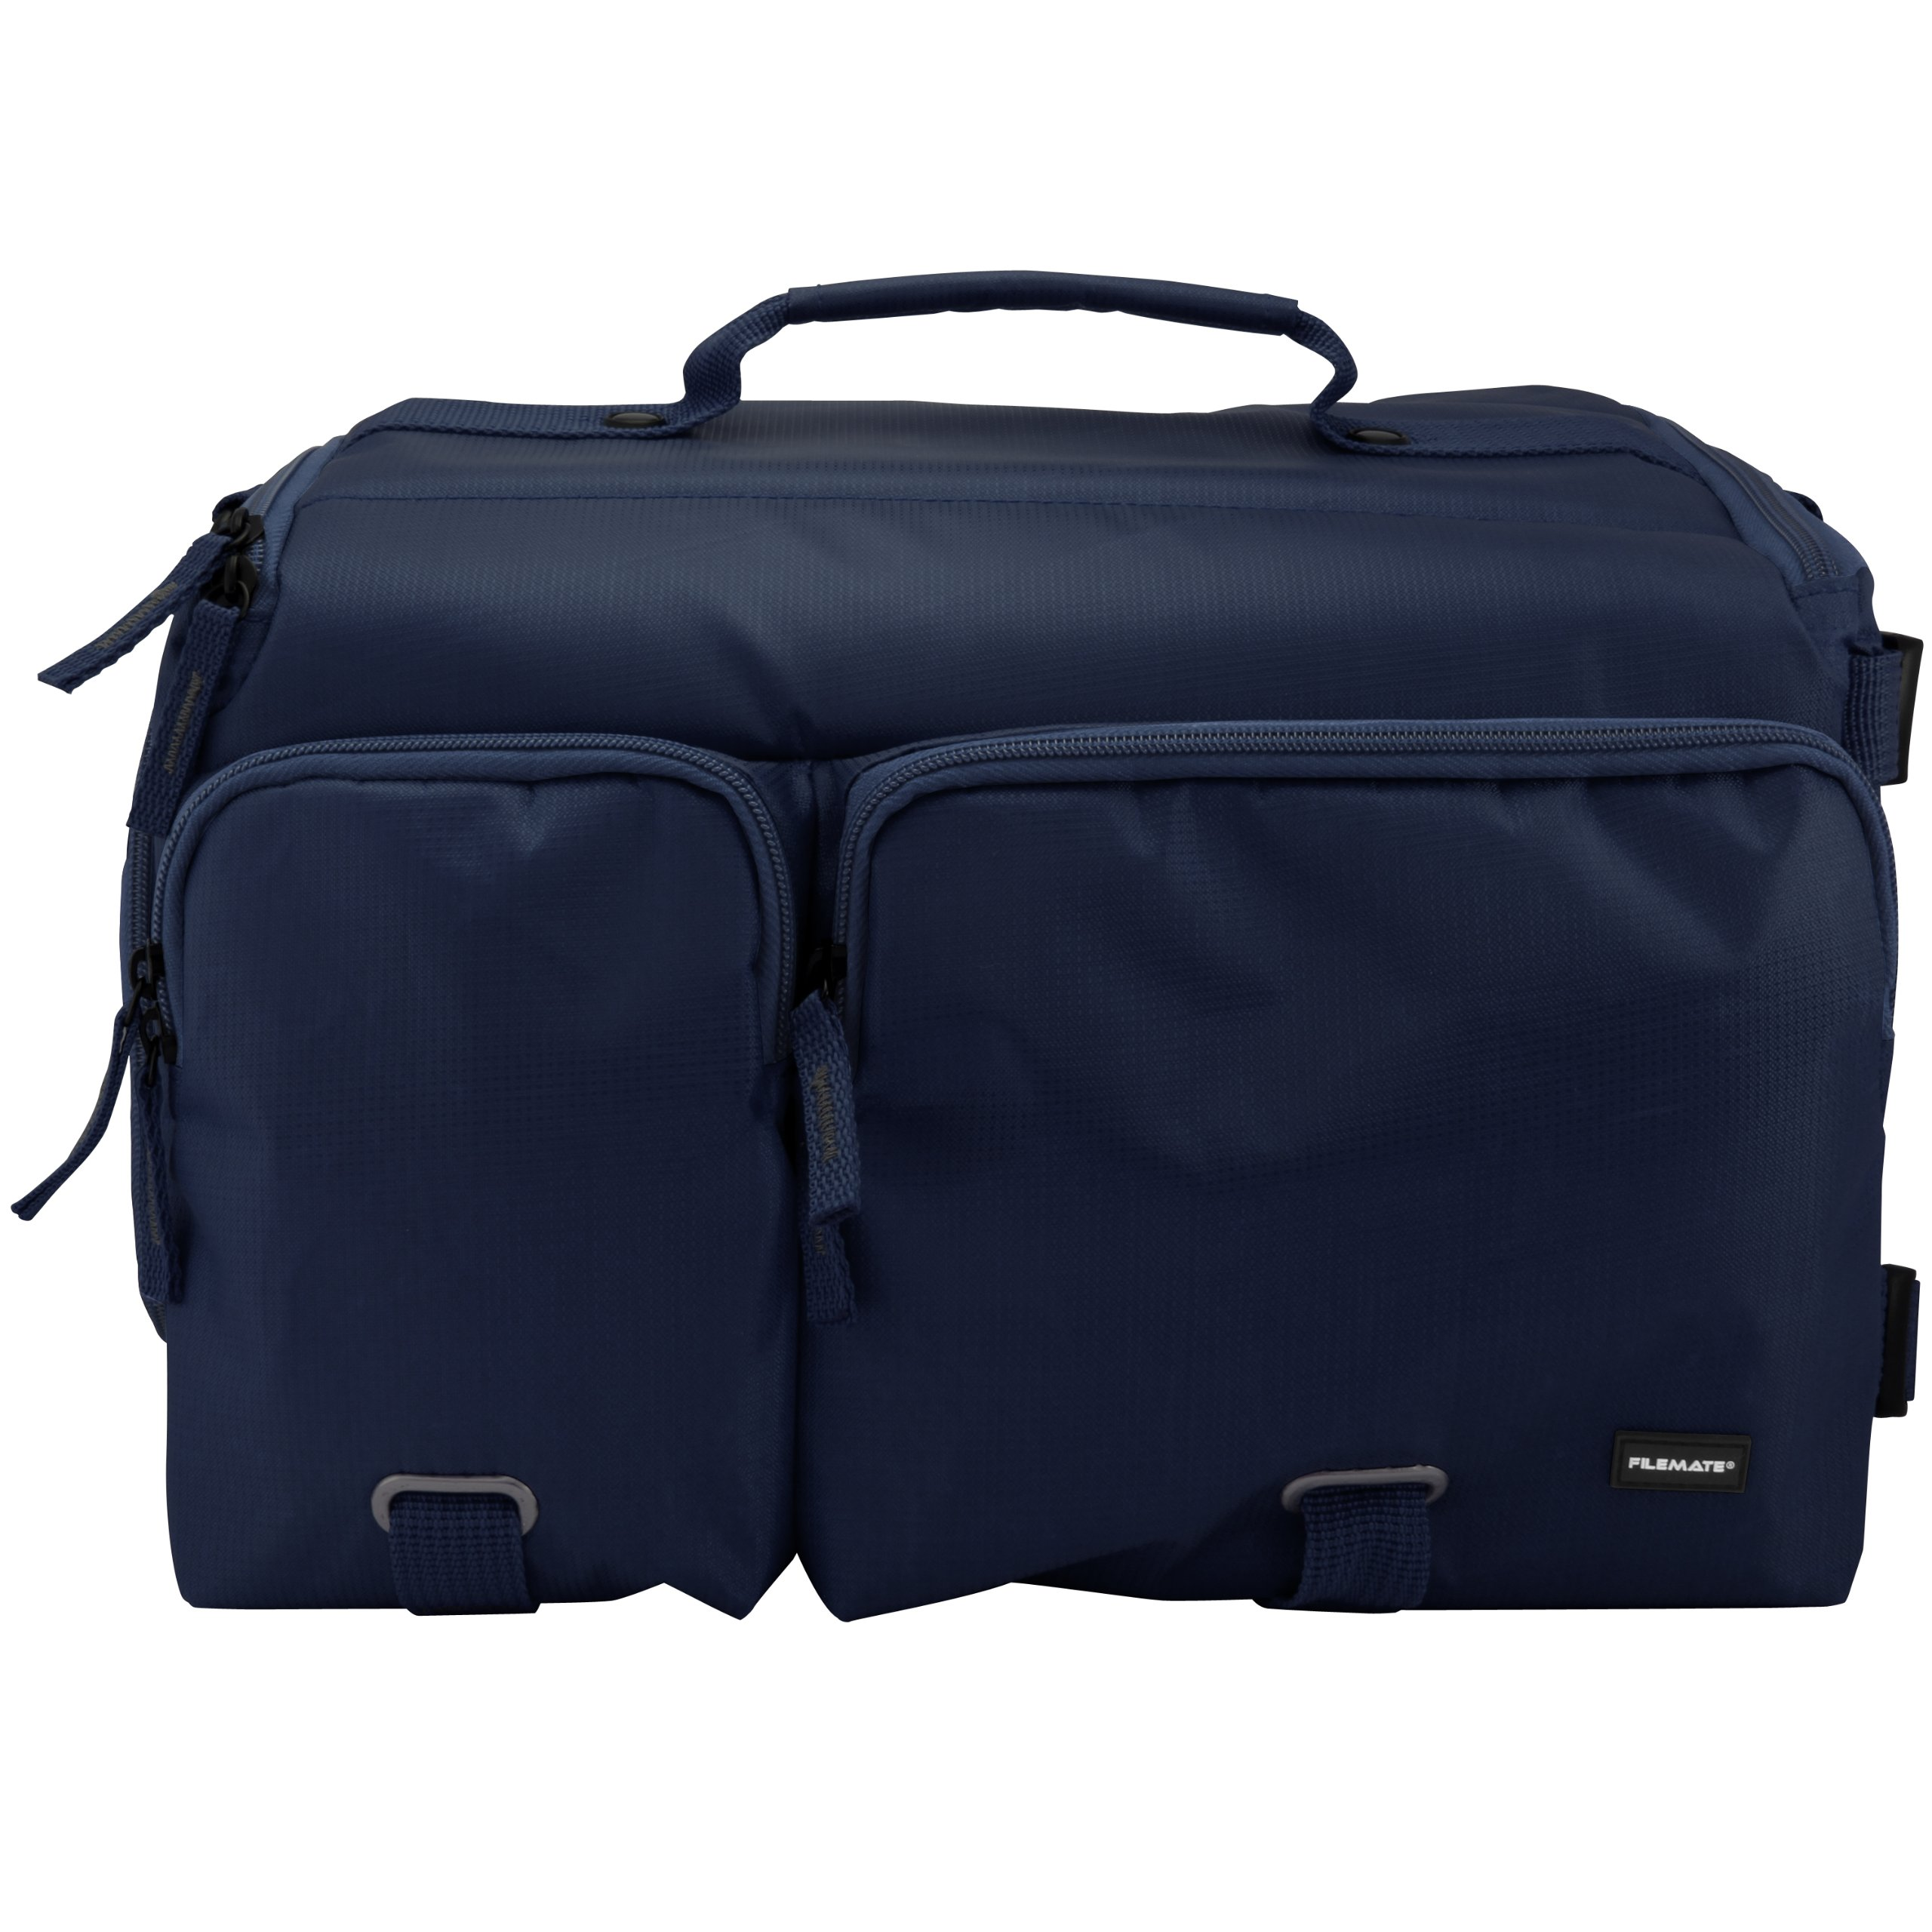 Filemate 3FMCG230NV3-R ECOProfessional SLR CameraBag with Two Front Pockets (Navy Blue)